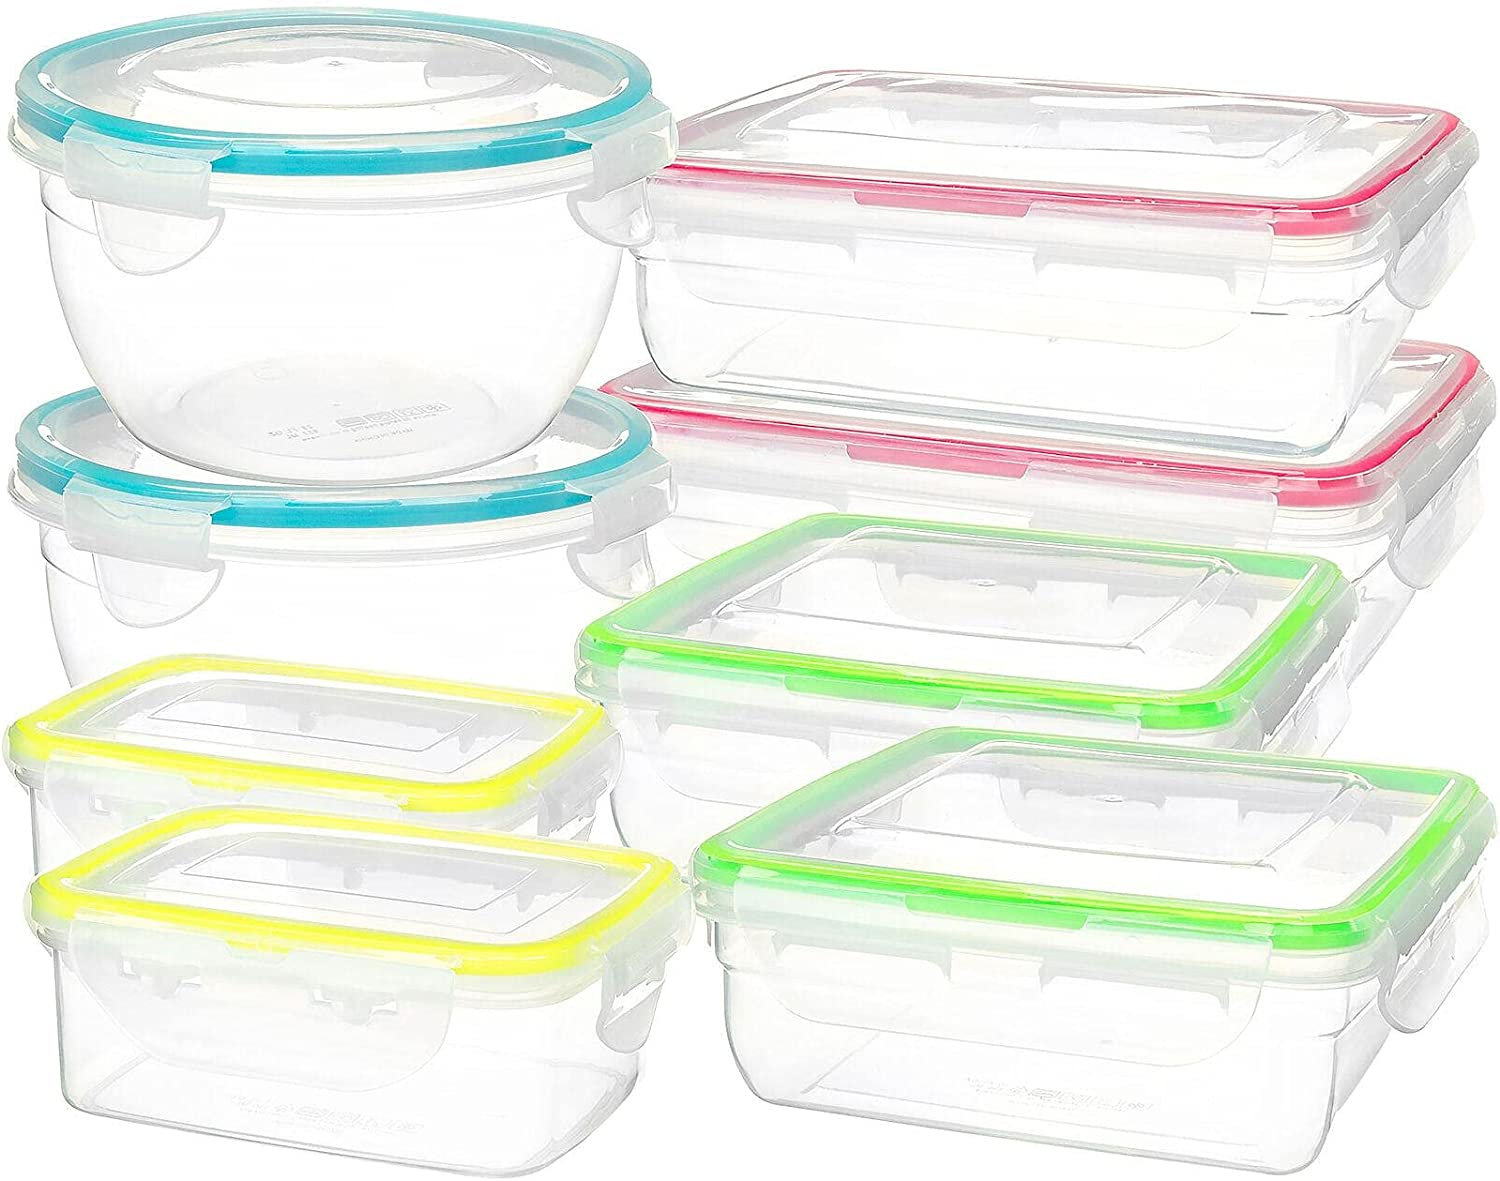 16 Piece Clip Lock Inexpensive Food Fruits shipfree Storage Set Container Vegetables